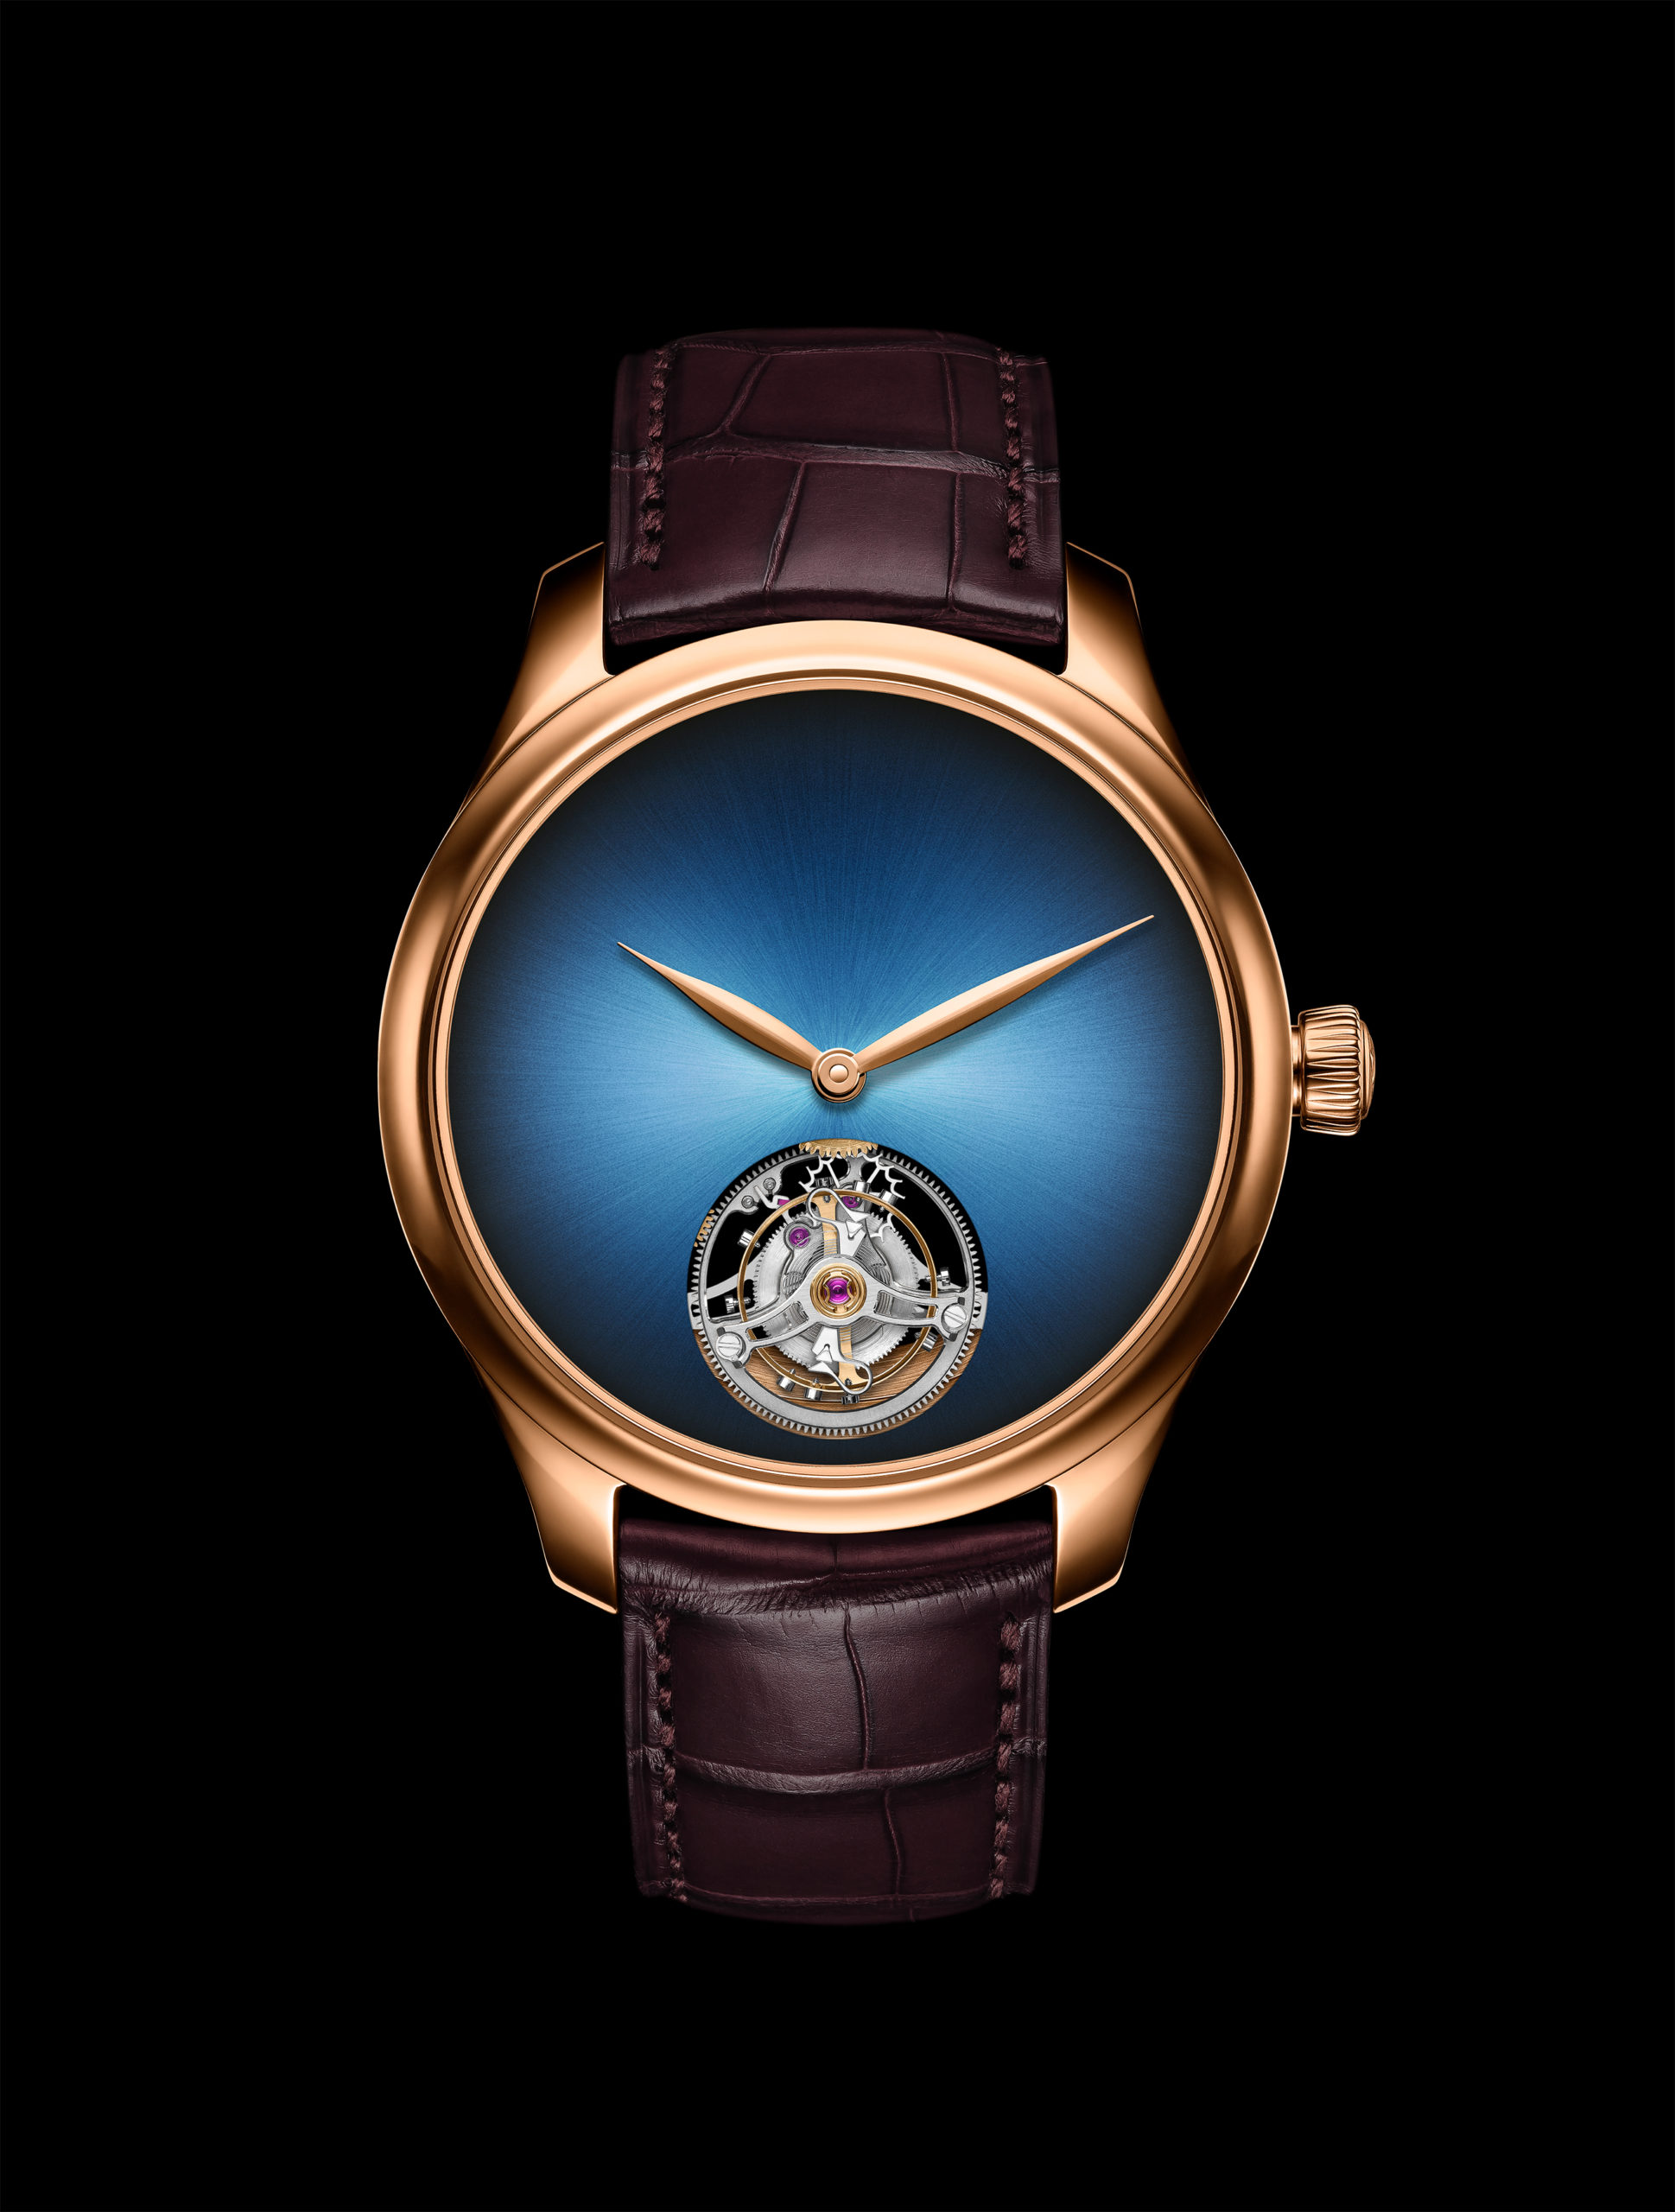 Endeavour Tourbillon Concept in 5N red gold (Image: H. Moser & Cie.)